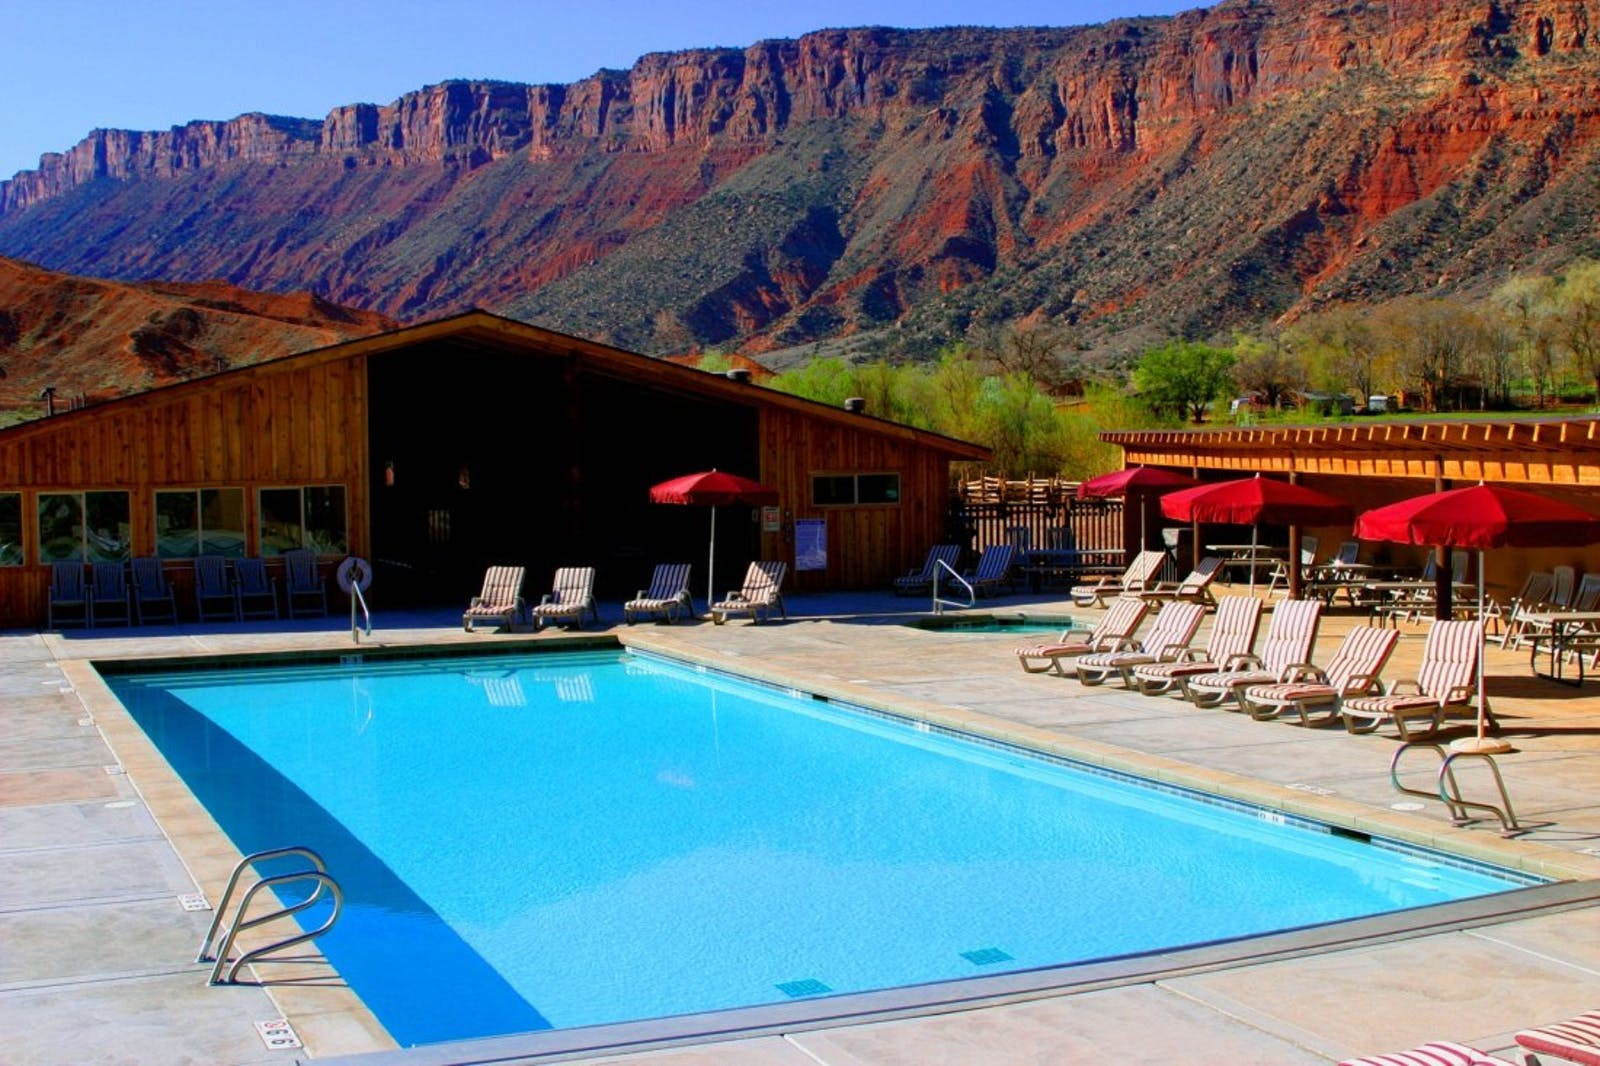 Swimming Pool at Red Cliffs Lodge, Utah